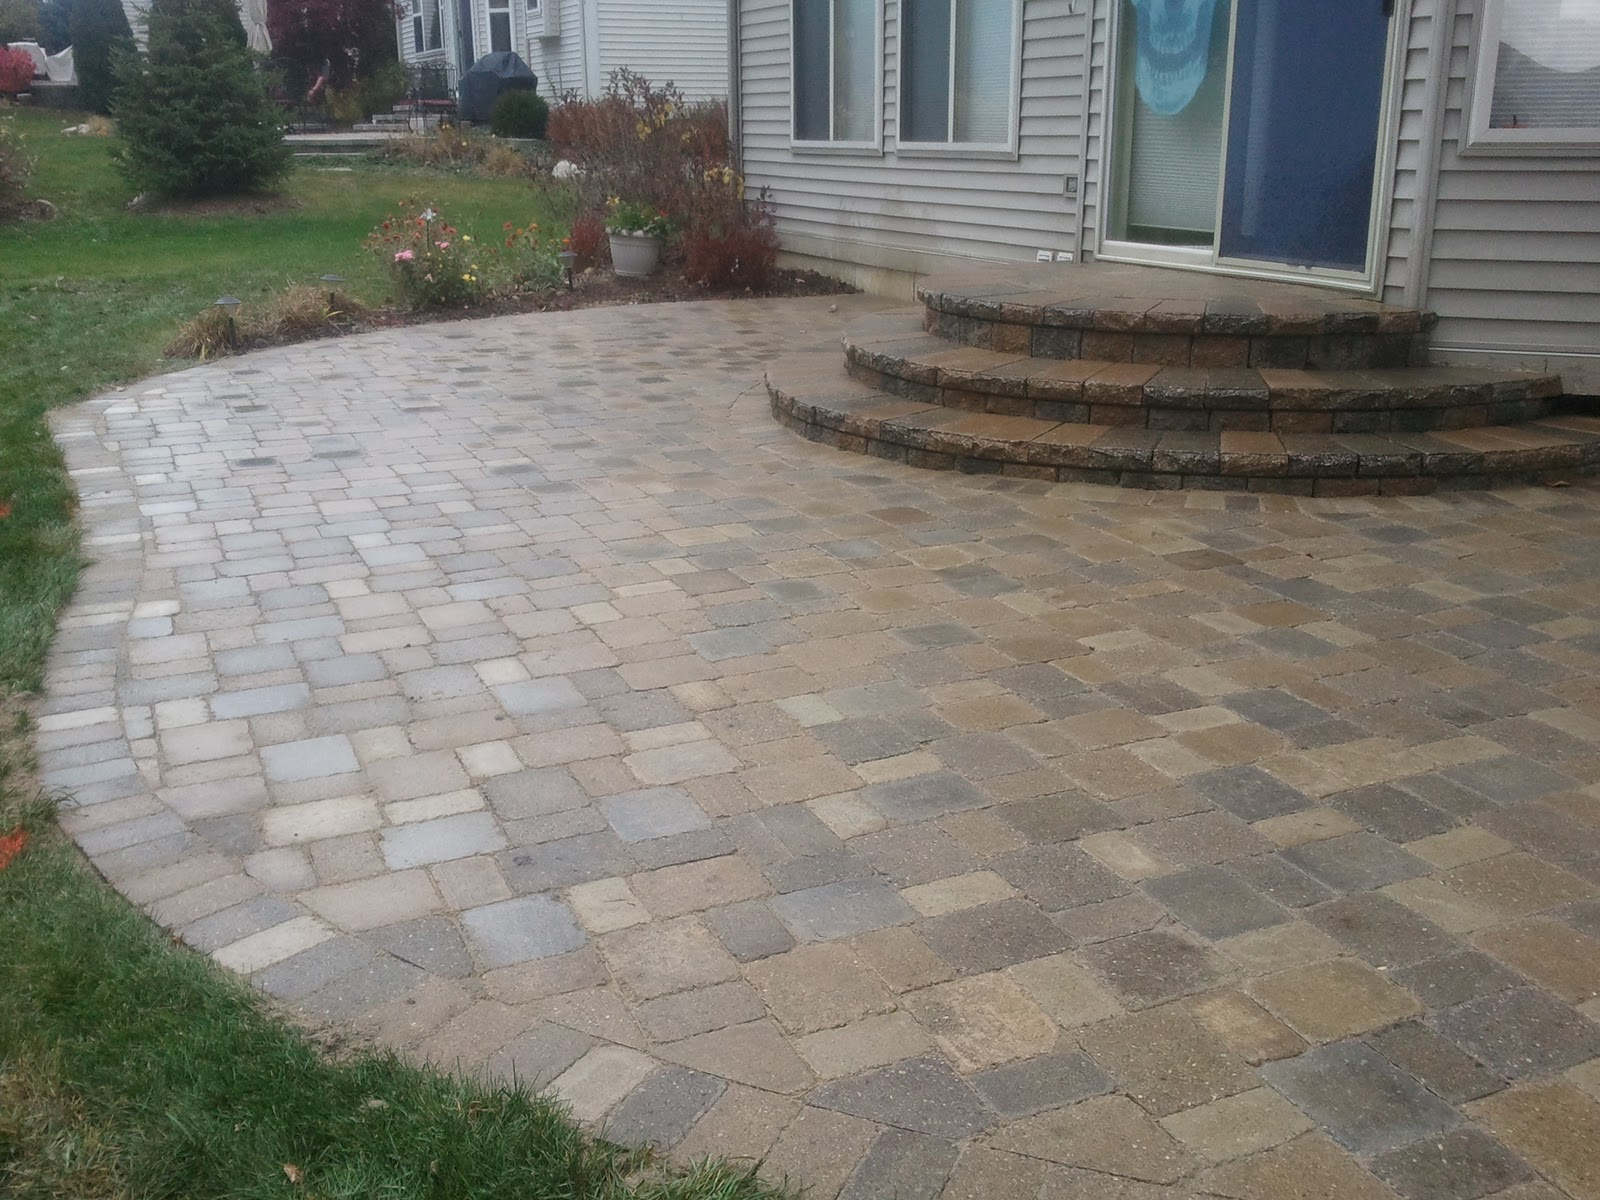 Patio stone pavers patio design ideas for Brick steps design ideas